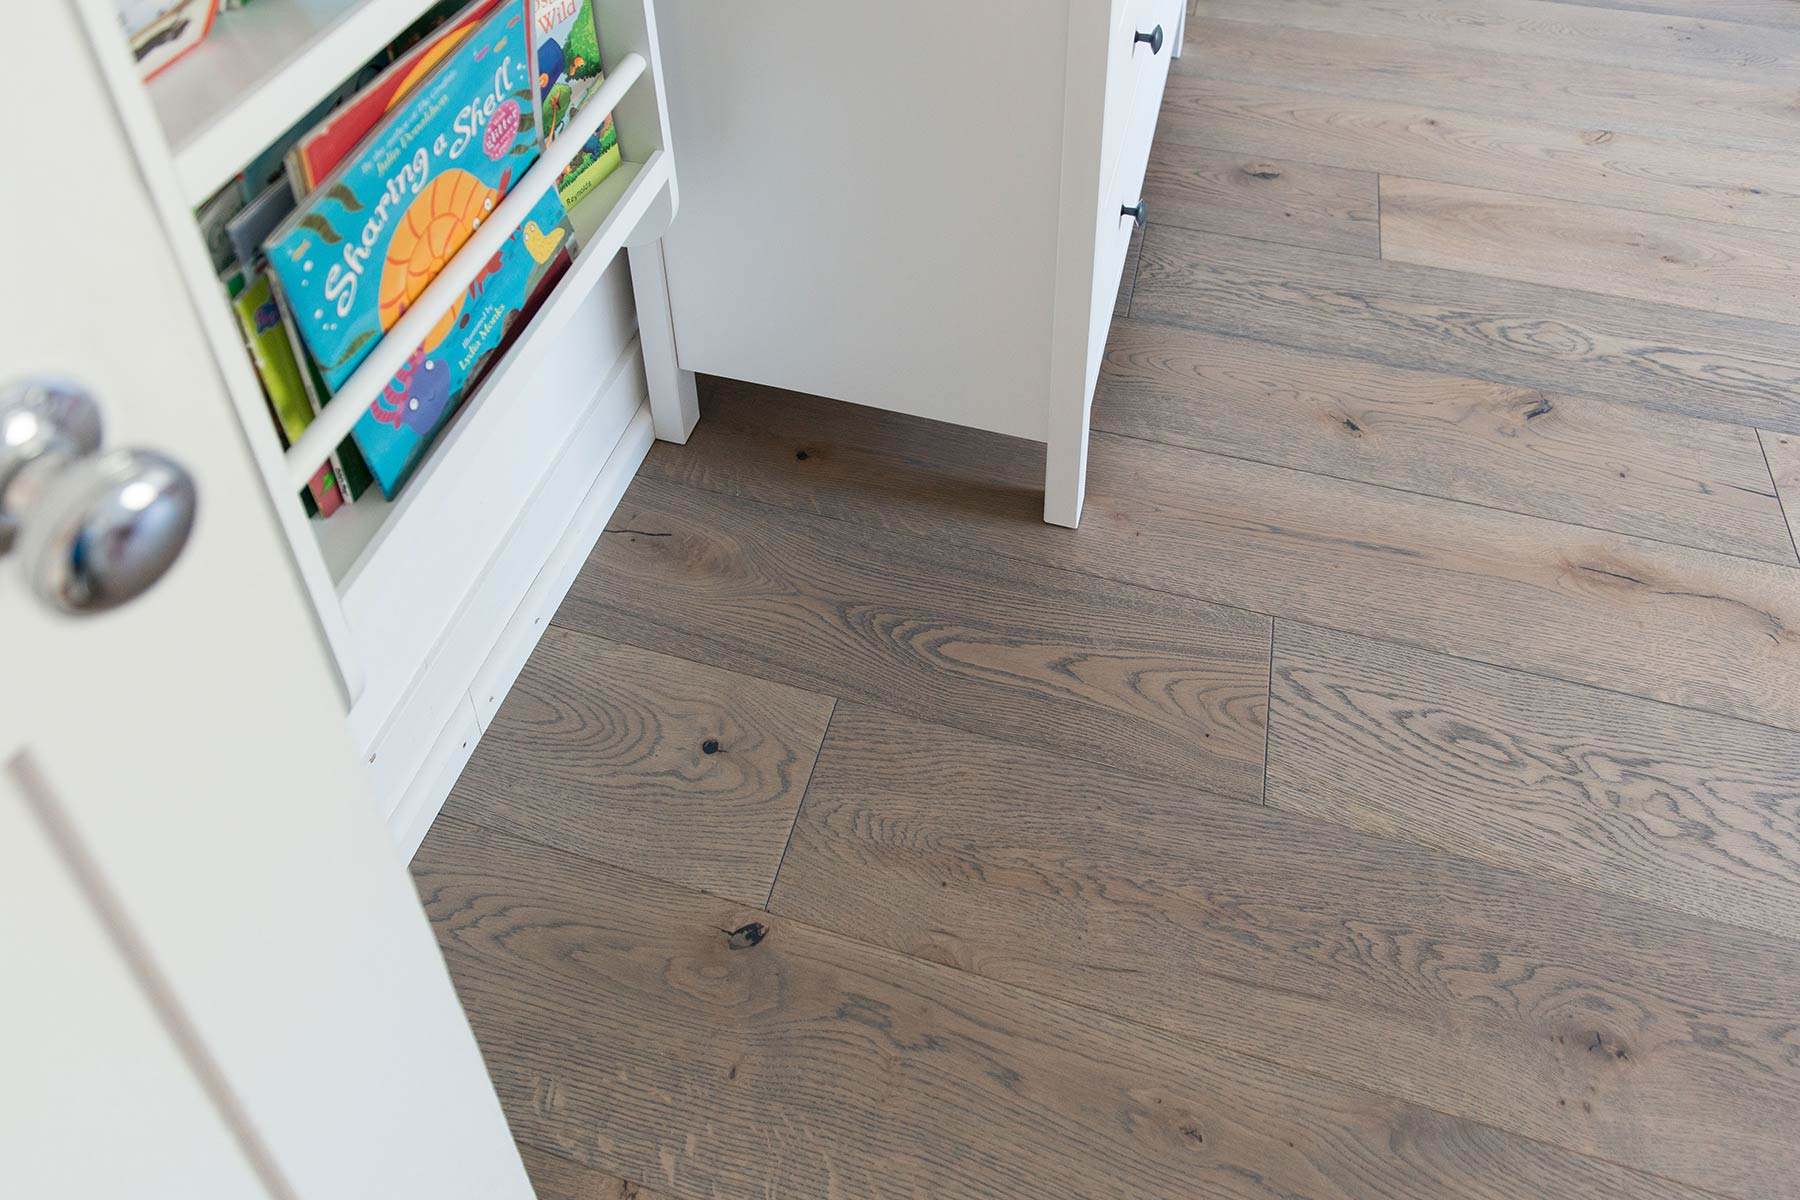 The london wood flooring co - Deco Frozen Umber Wood Floors Deliver Soft Serene Bedroom Style In This London Home